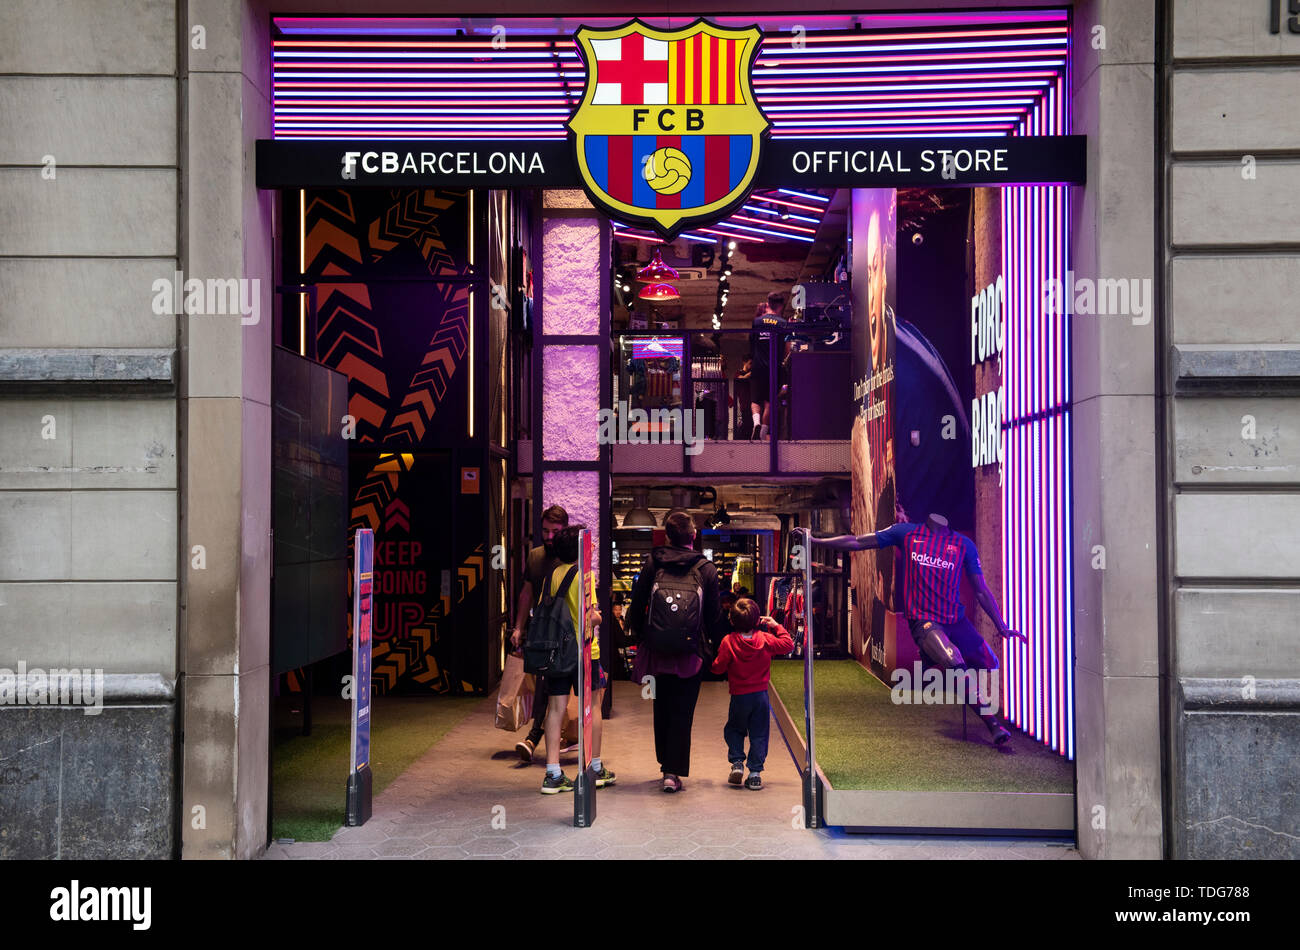 Customers enter at the Spanish professional football team the Futbol Club Barcelona store in Barcelona. - Stock Image